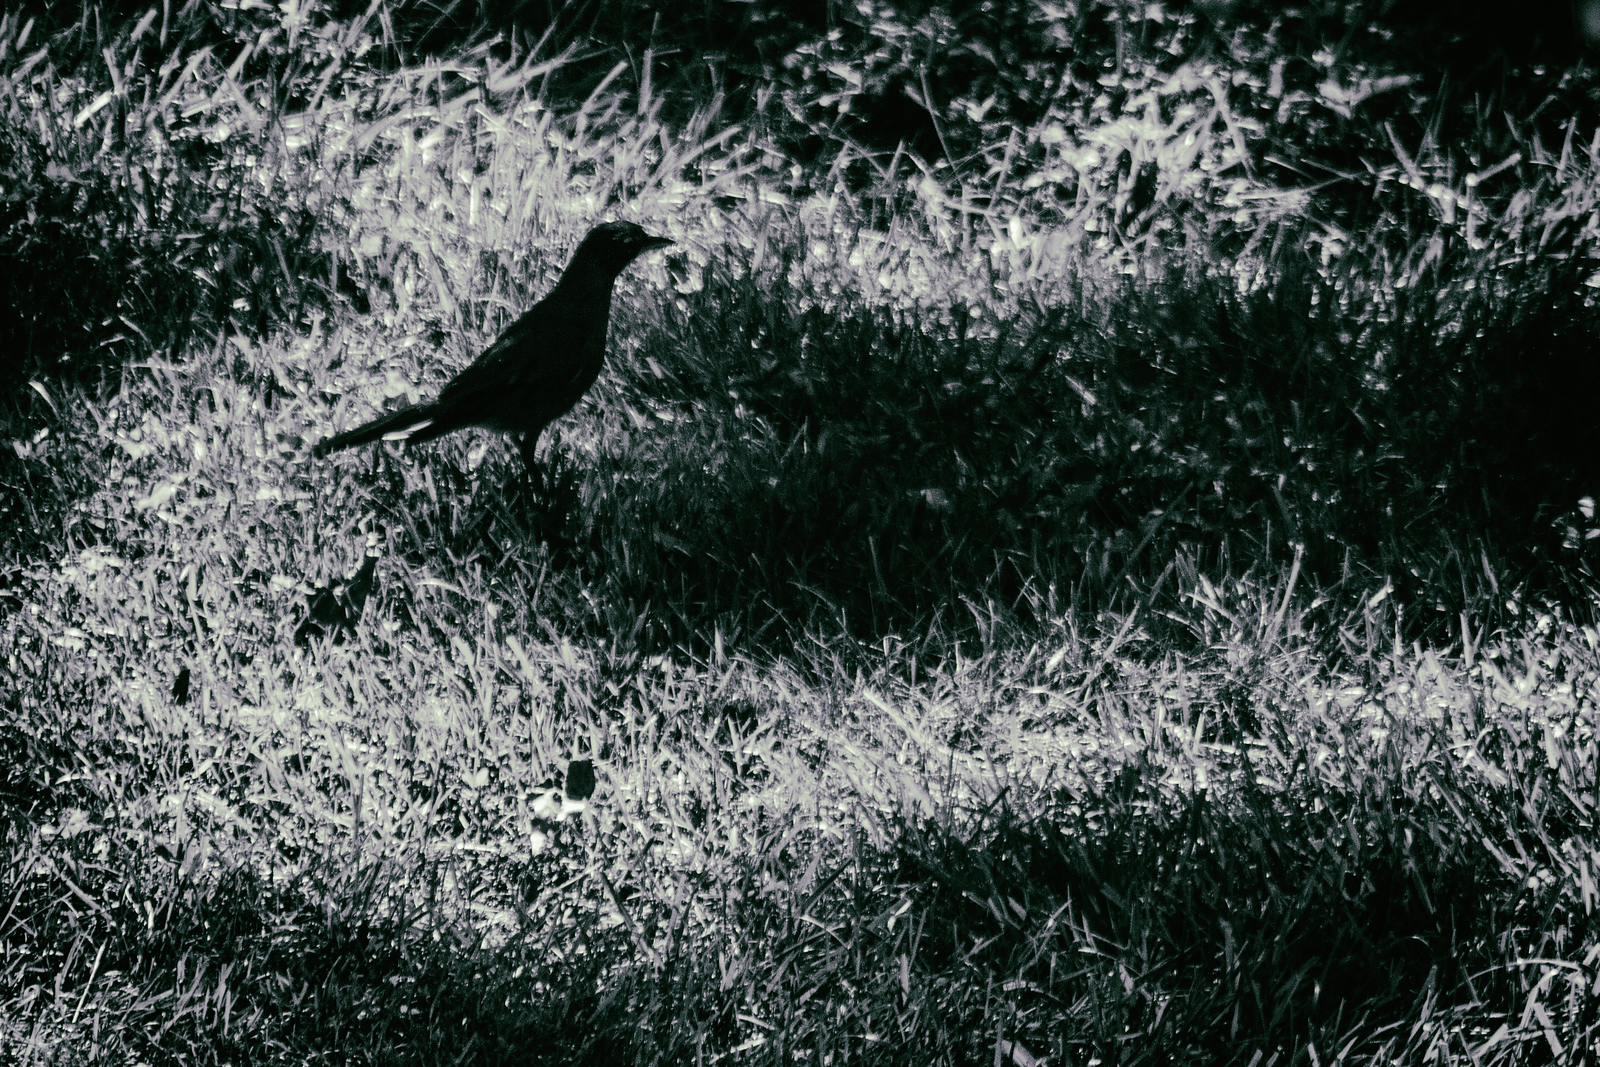 Some backyard photography tonight, robin in search food